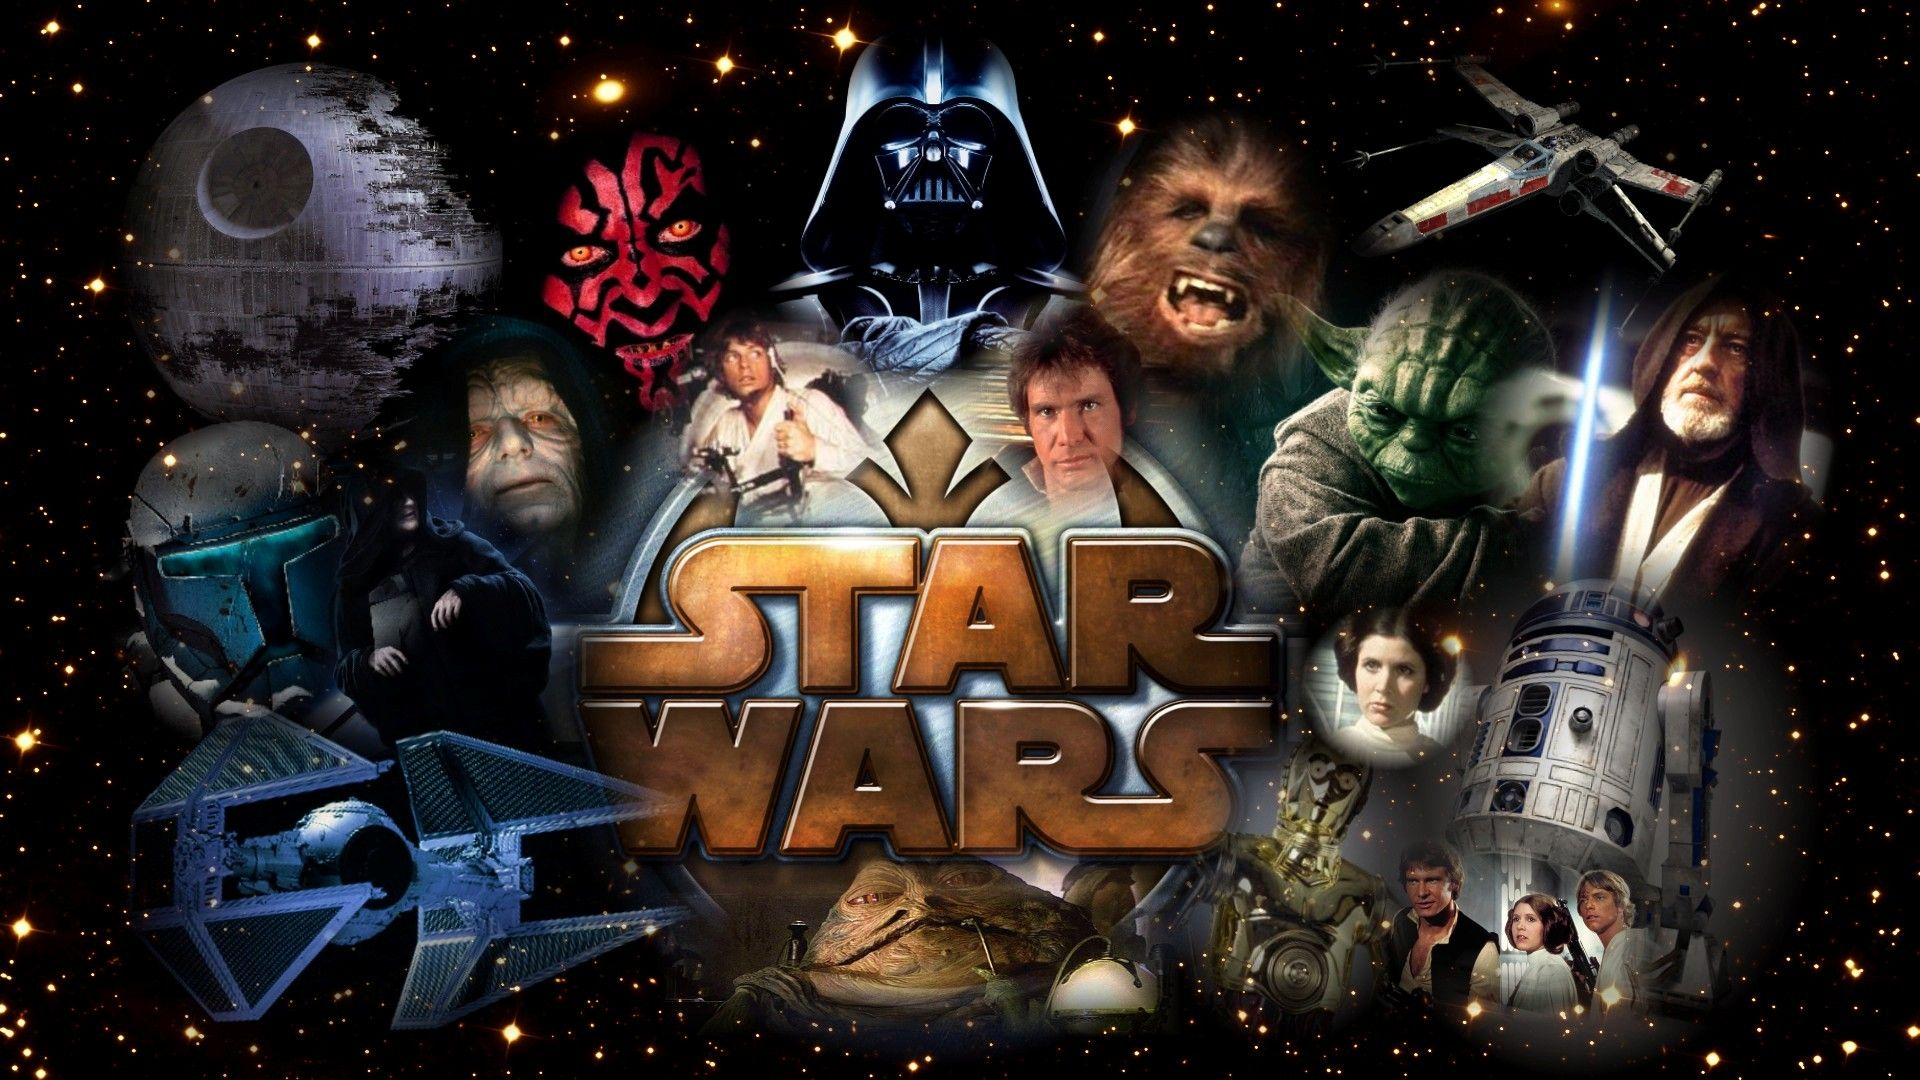 Star Wars Characters Wallpapers Top Free Star Wars Characters Backgrounds Wallpaperaccess